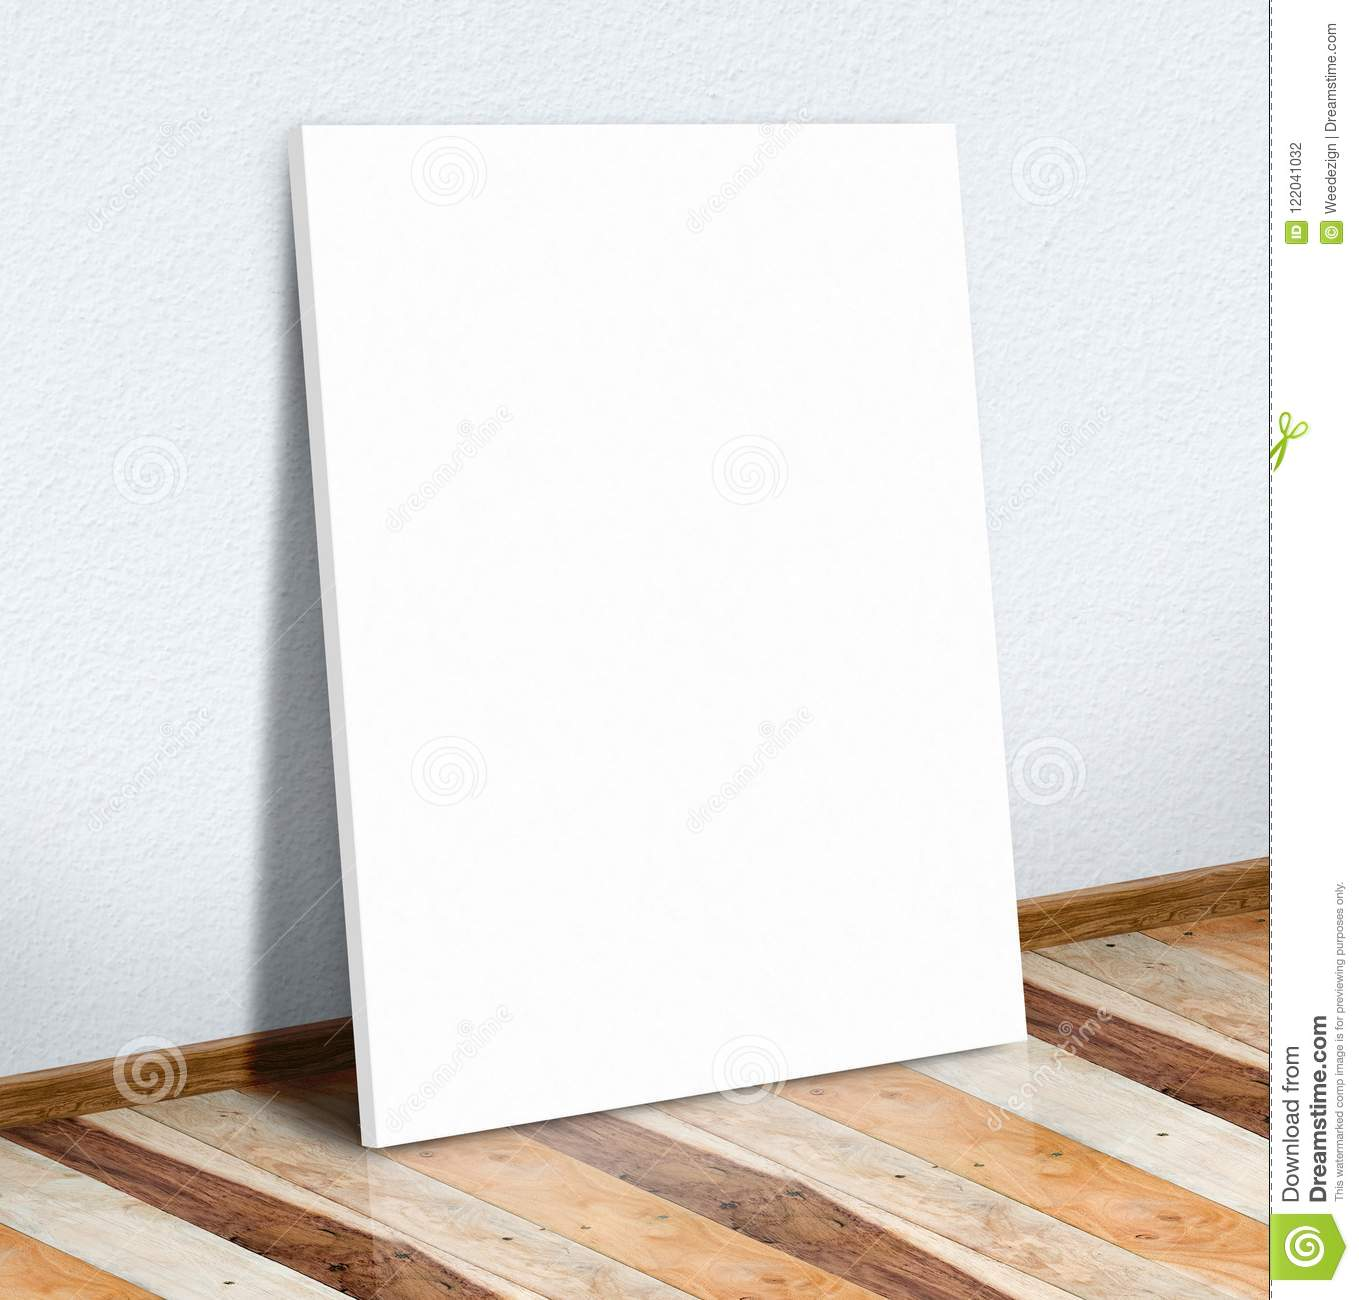 Blank white paper poster on white wall and wooden floor,Mock up